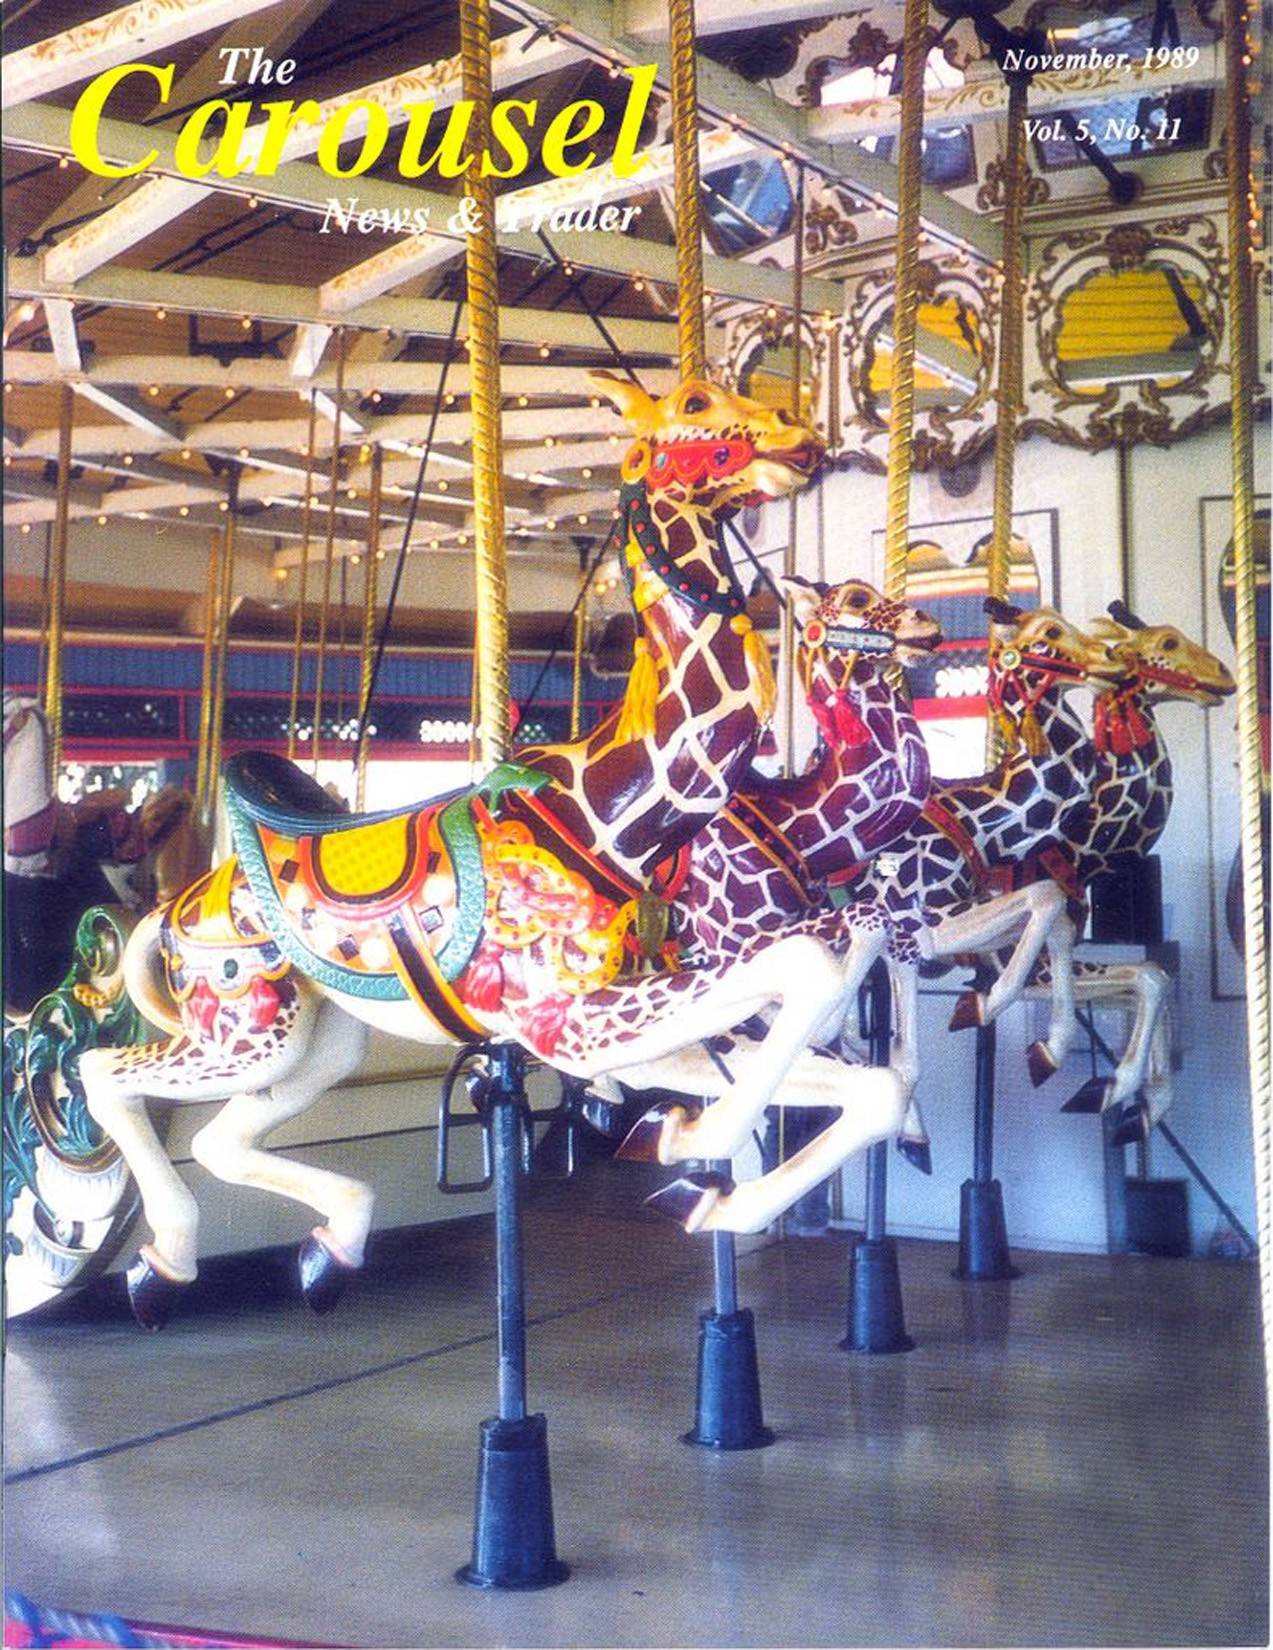 cnt_11_1989-cover-Marianne-Stevens-Looff-menagerie-carousel-Long-Beach